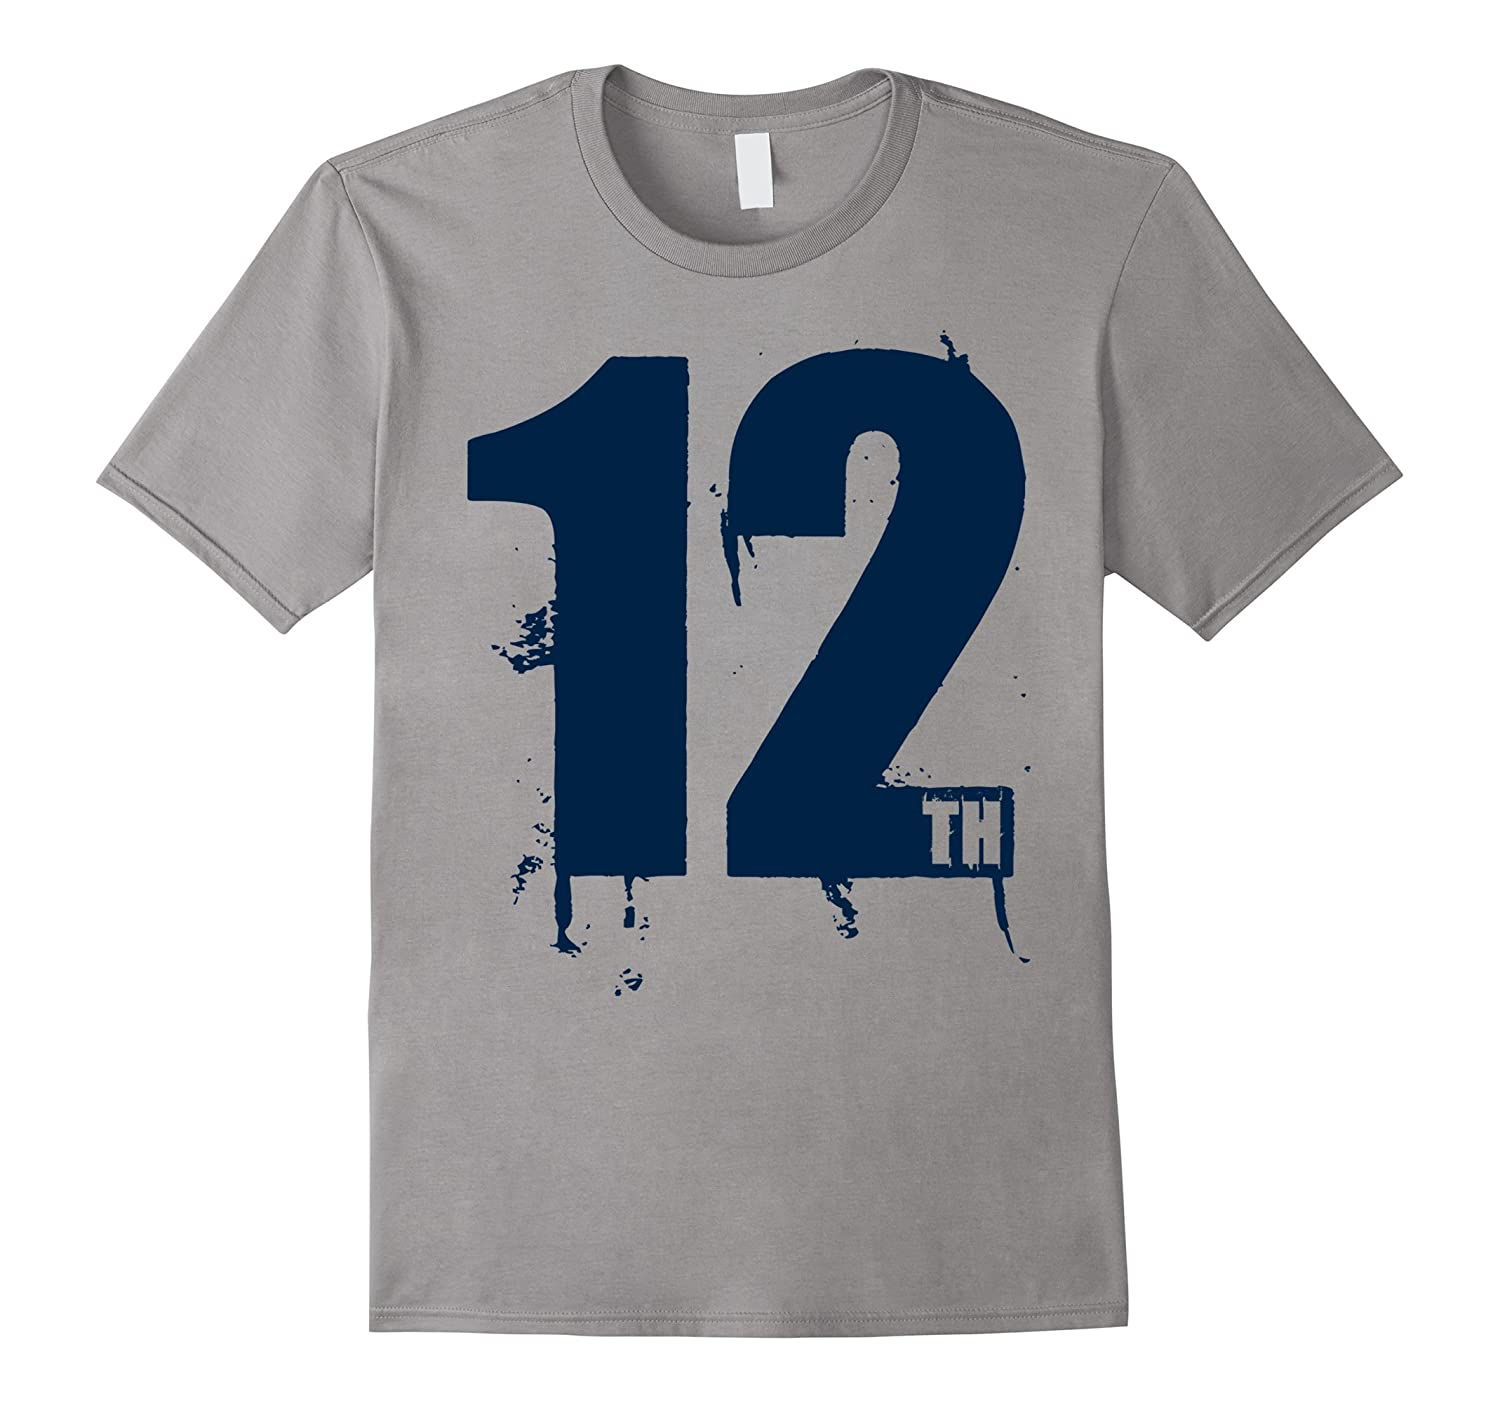 12th Man T-Shirt for Seattle Fans!-BN